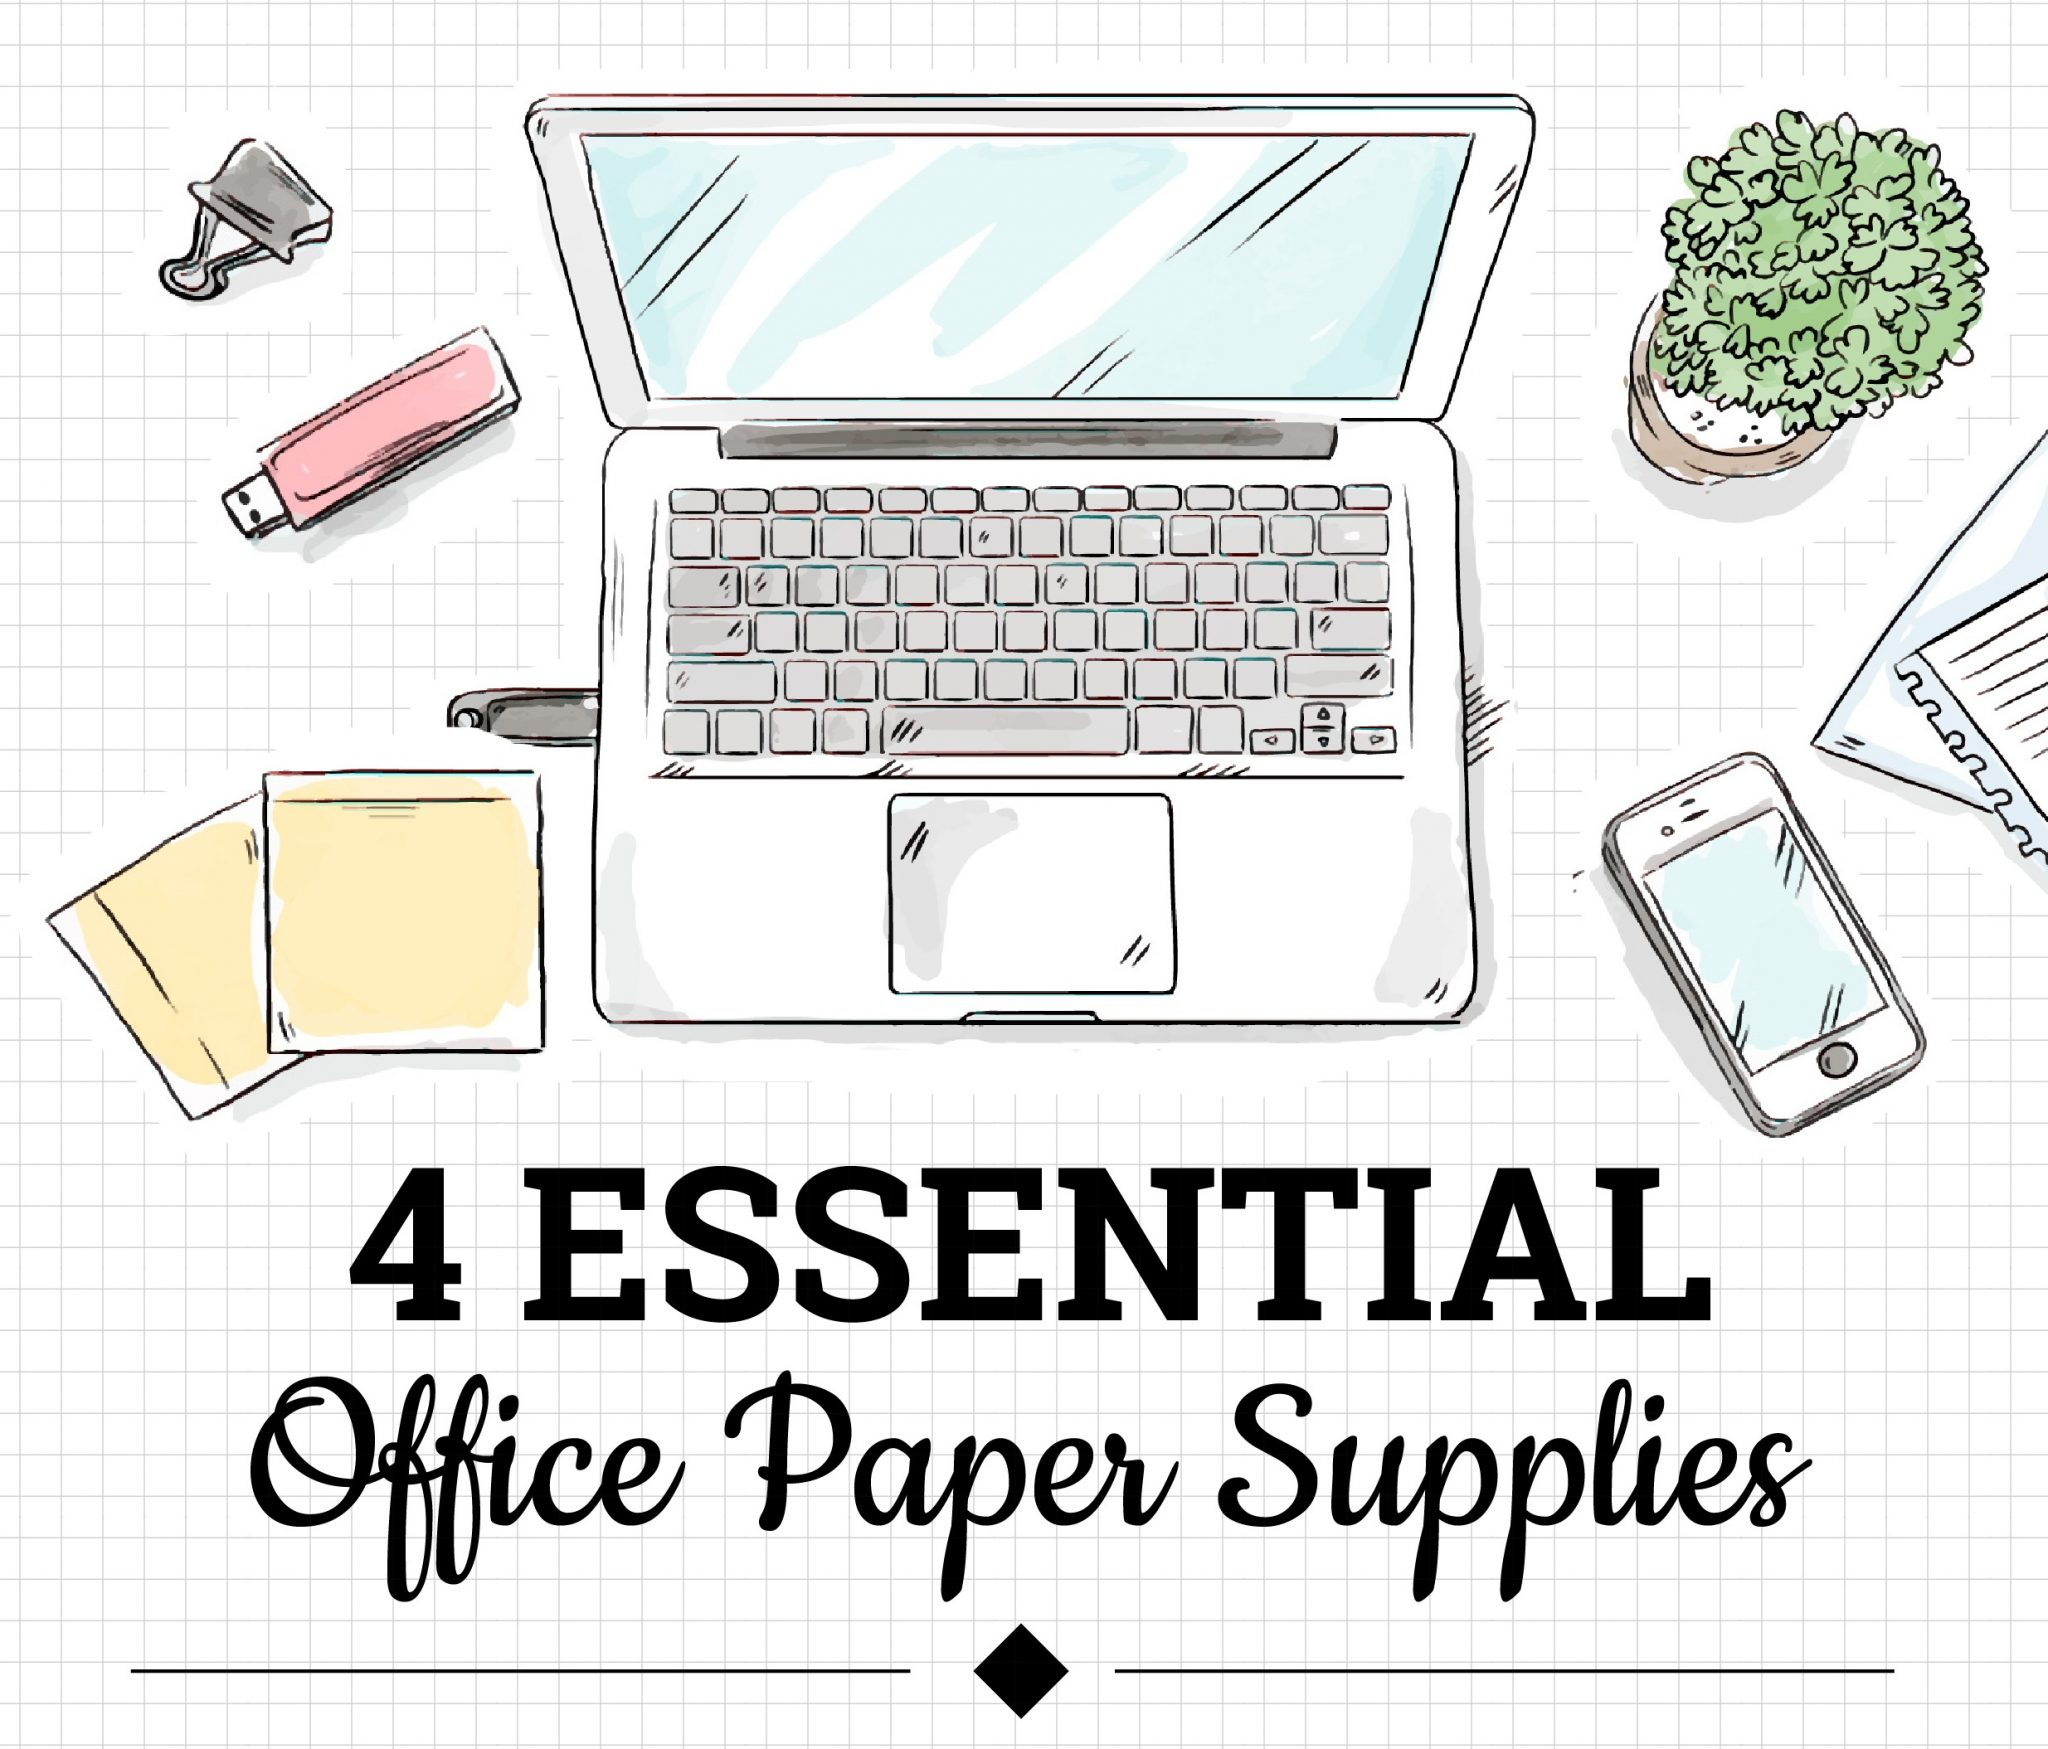 Image showing office paper supplies